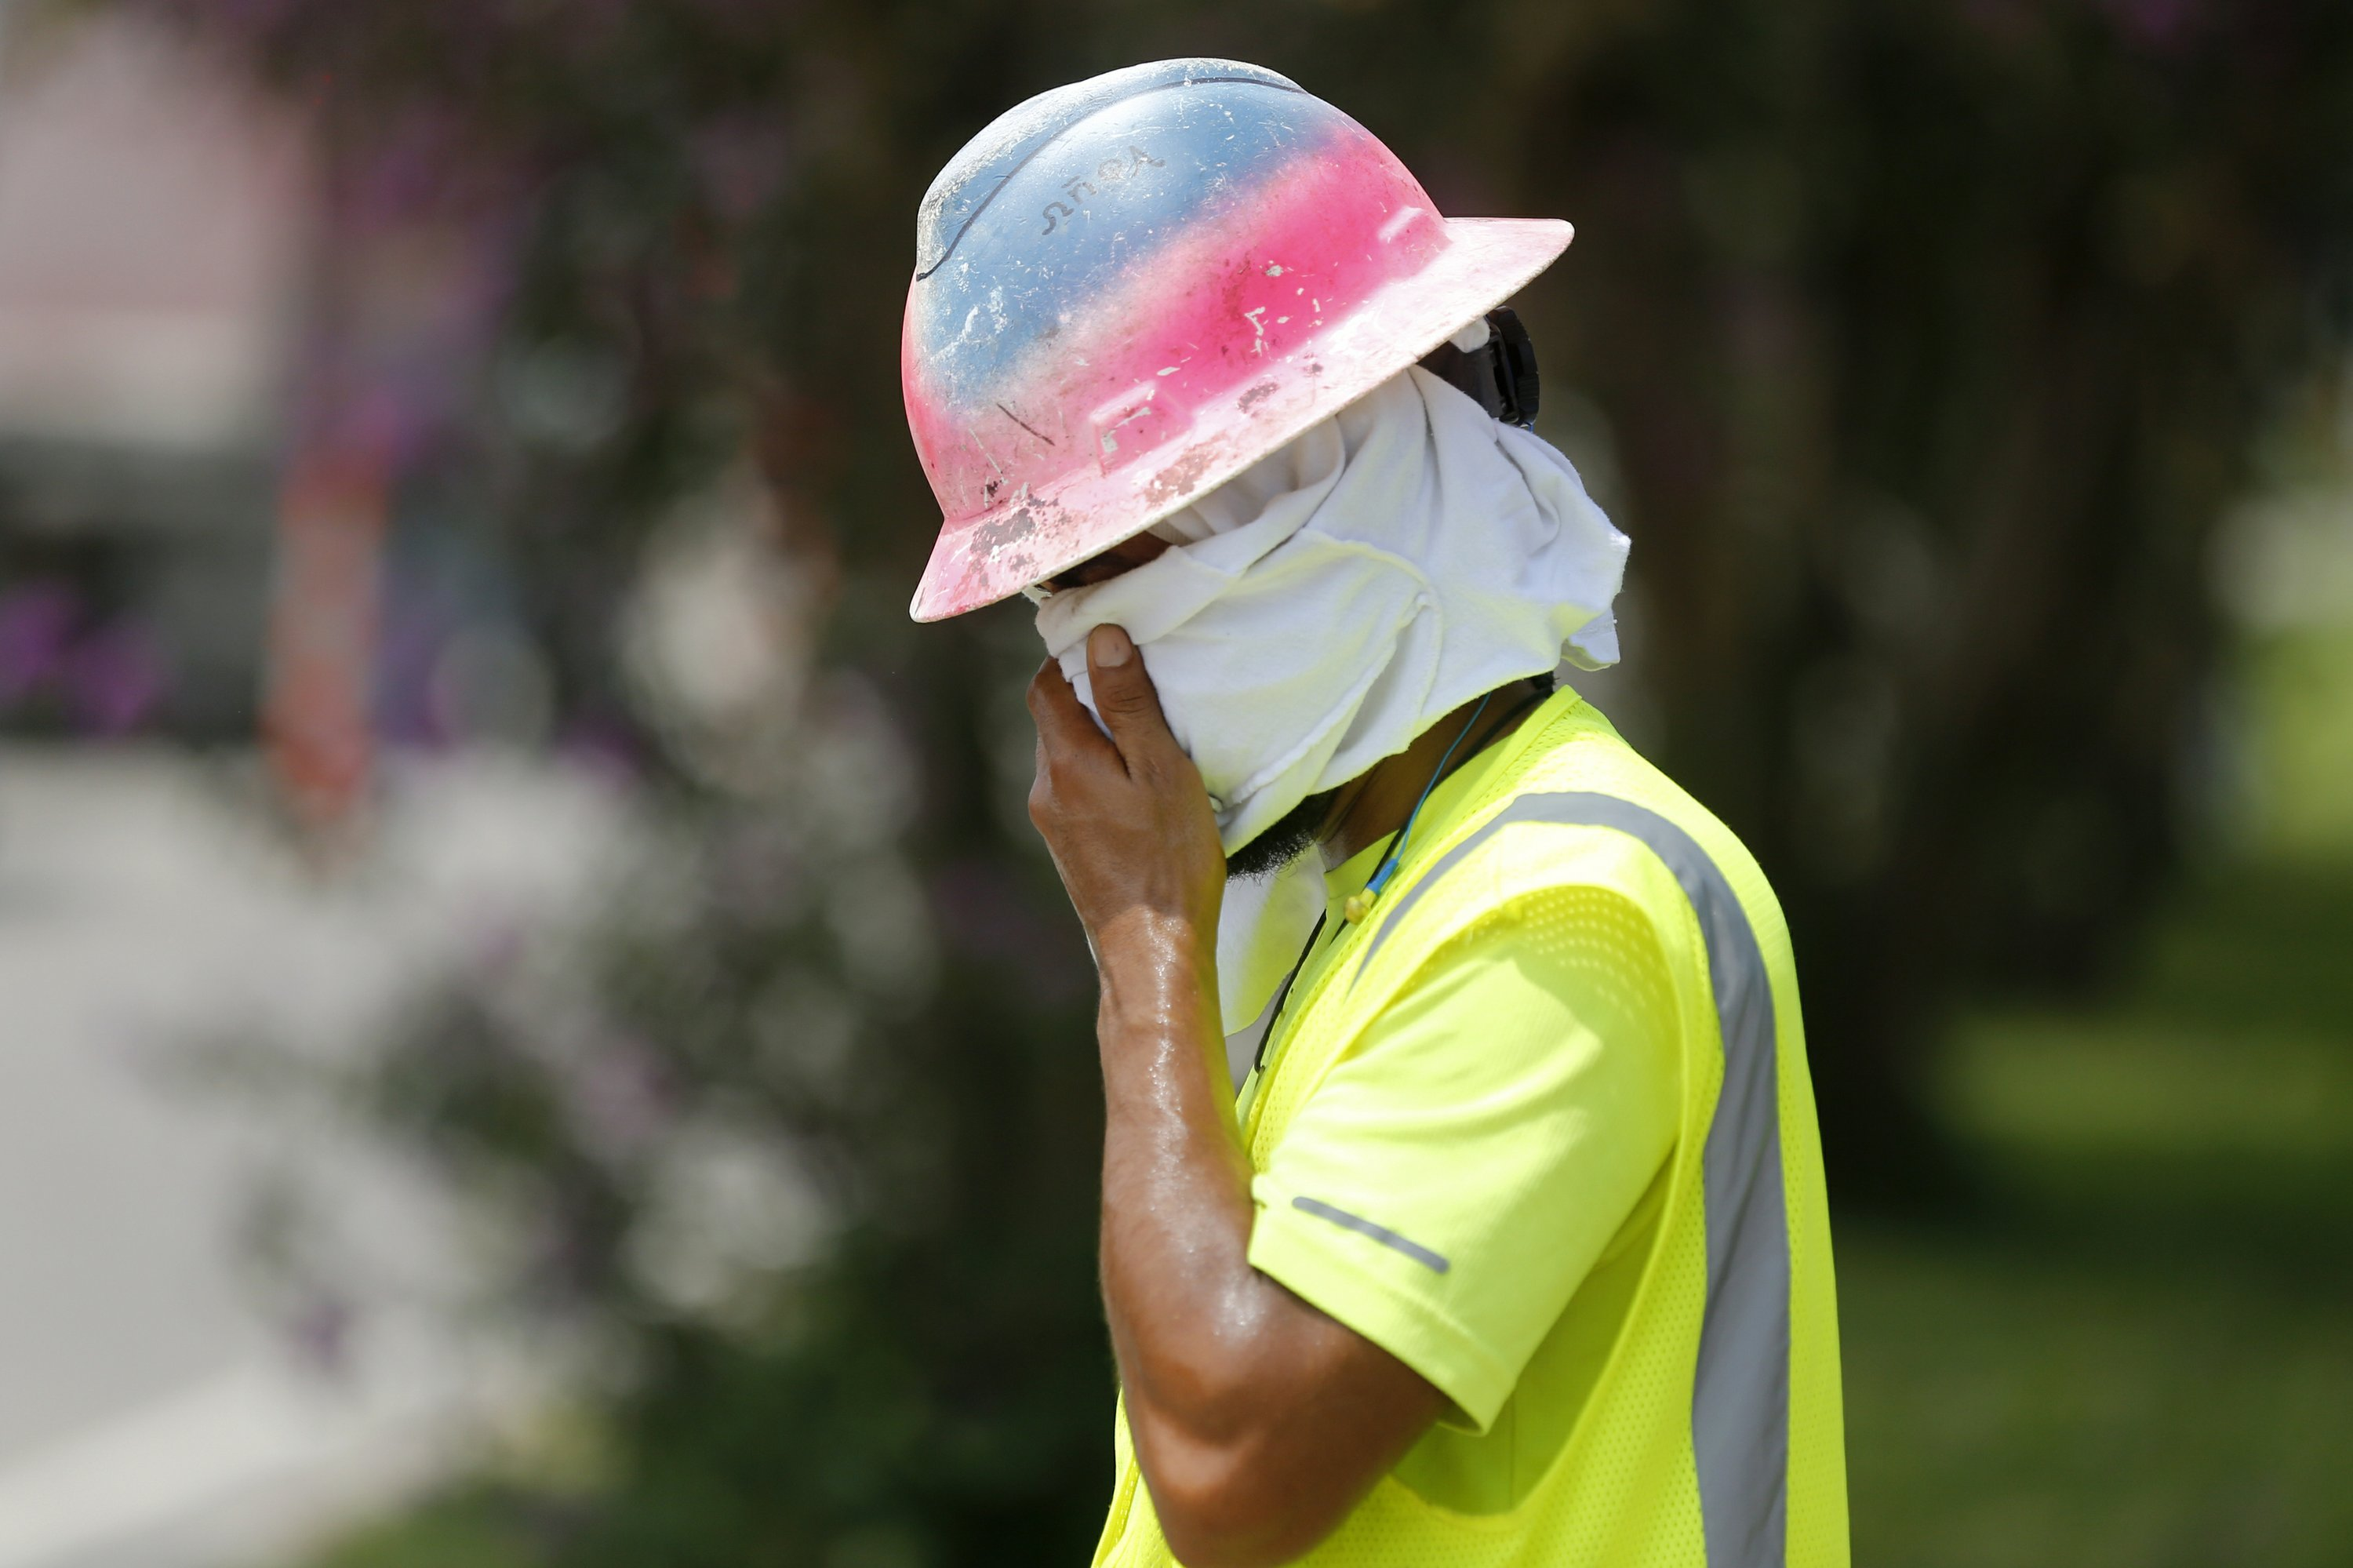 Dreadful heat, humidity invade South as misery continues